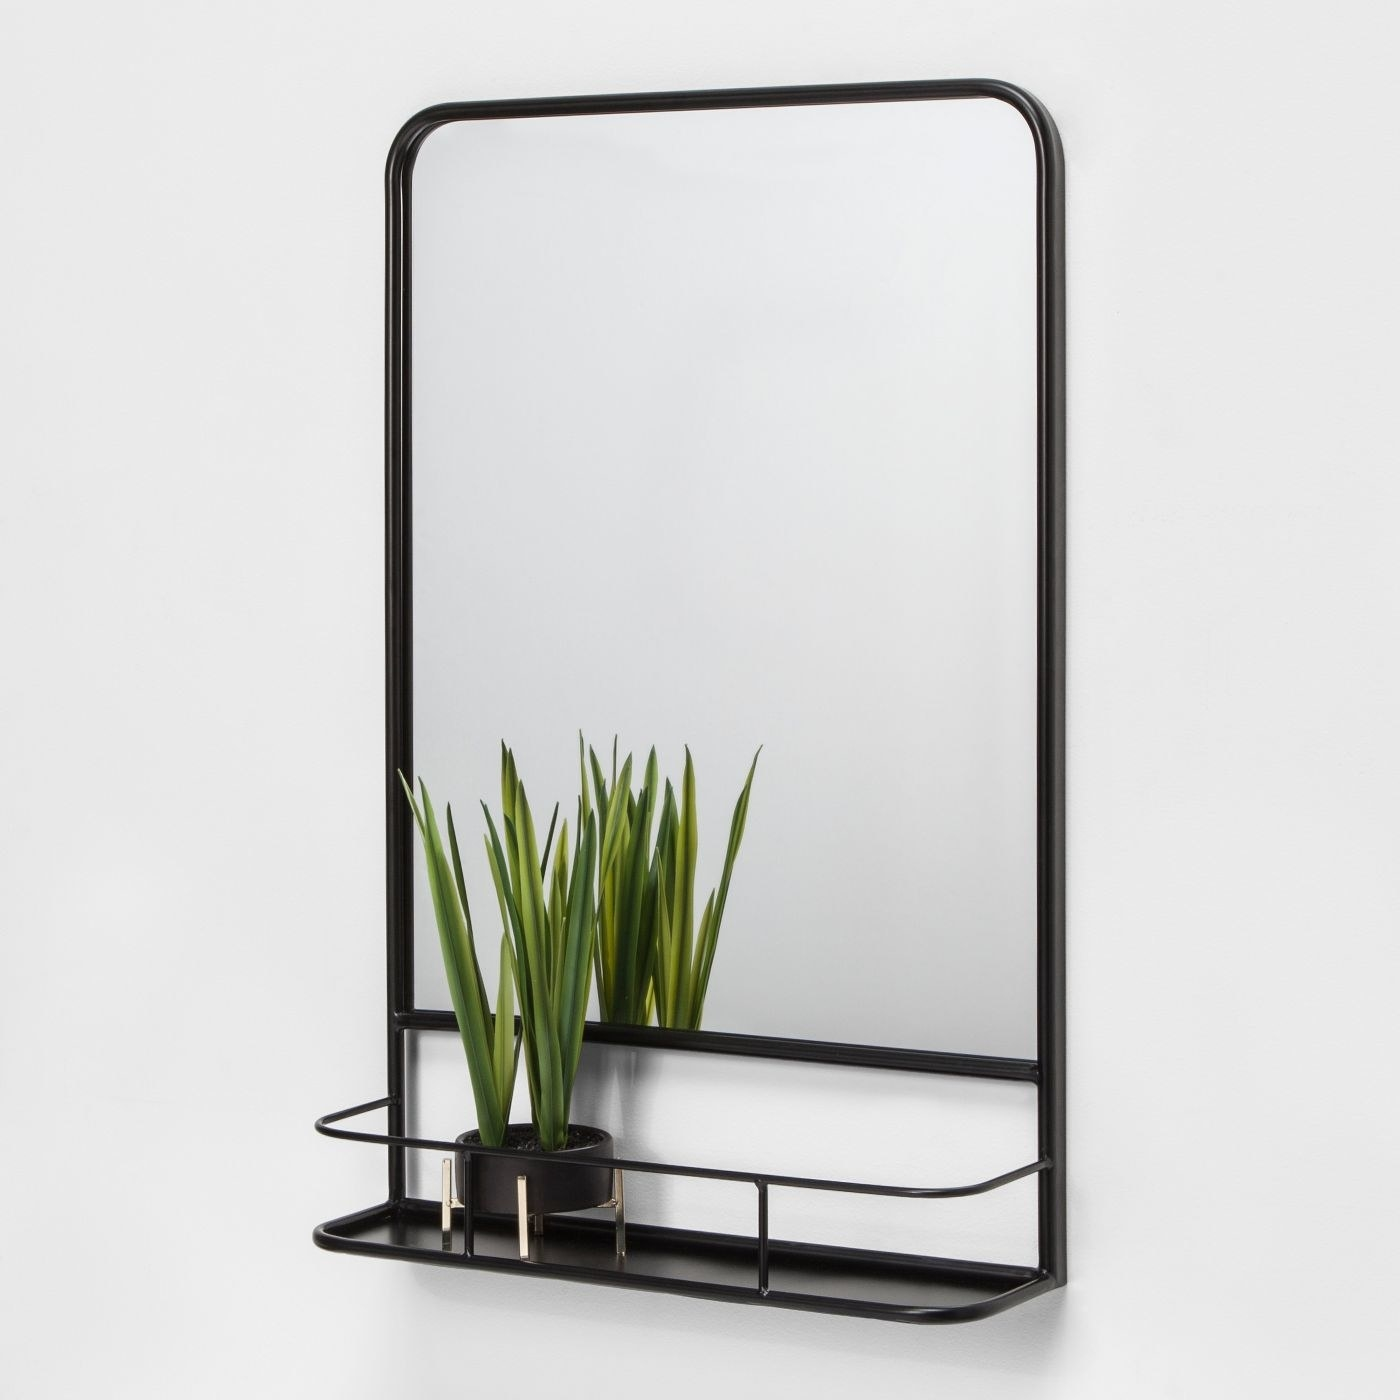 A black rectangle pharmacy mirror